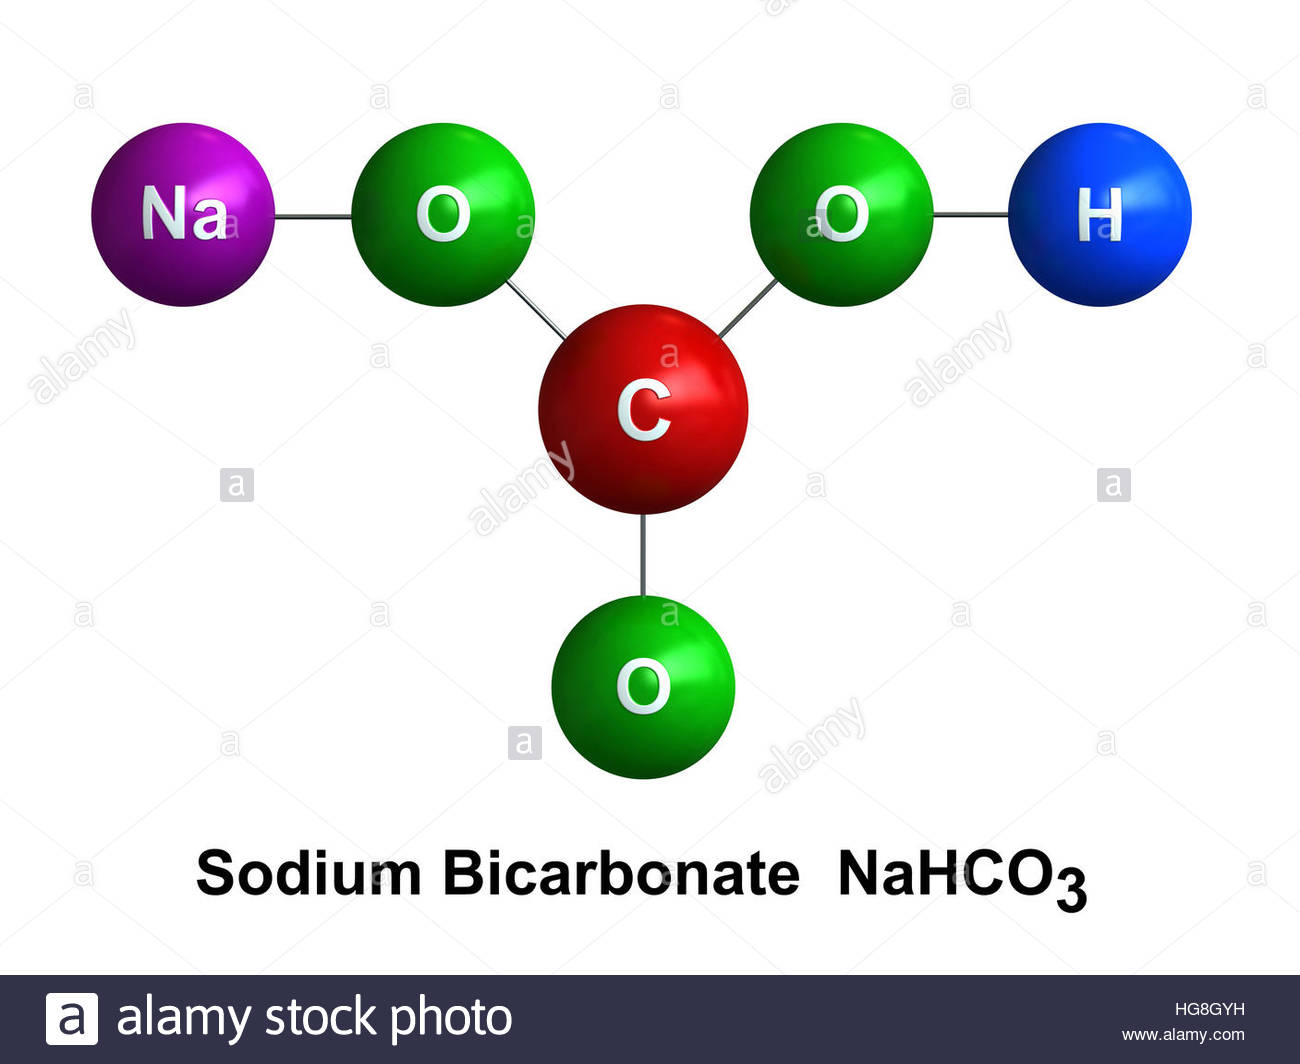 Calcium Bicarbonate clipart #15, Download drawings